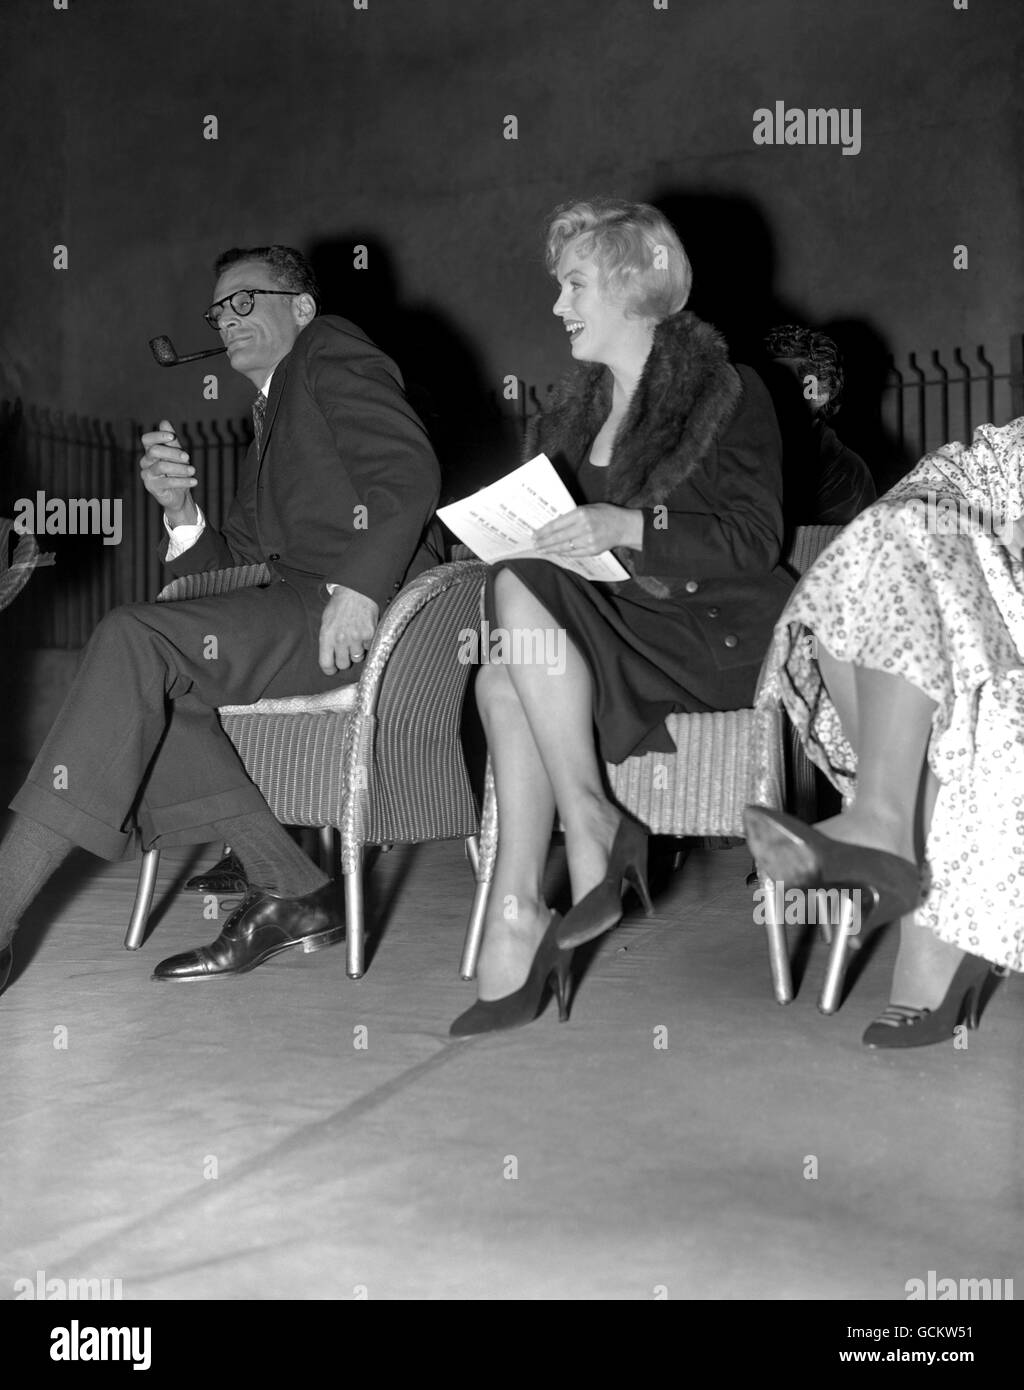 07020d1f9656 Marilyn Monroe Black and White Stock Photos   Images - Page 2 - Alamy